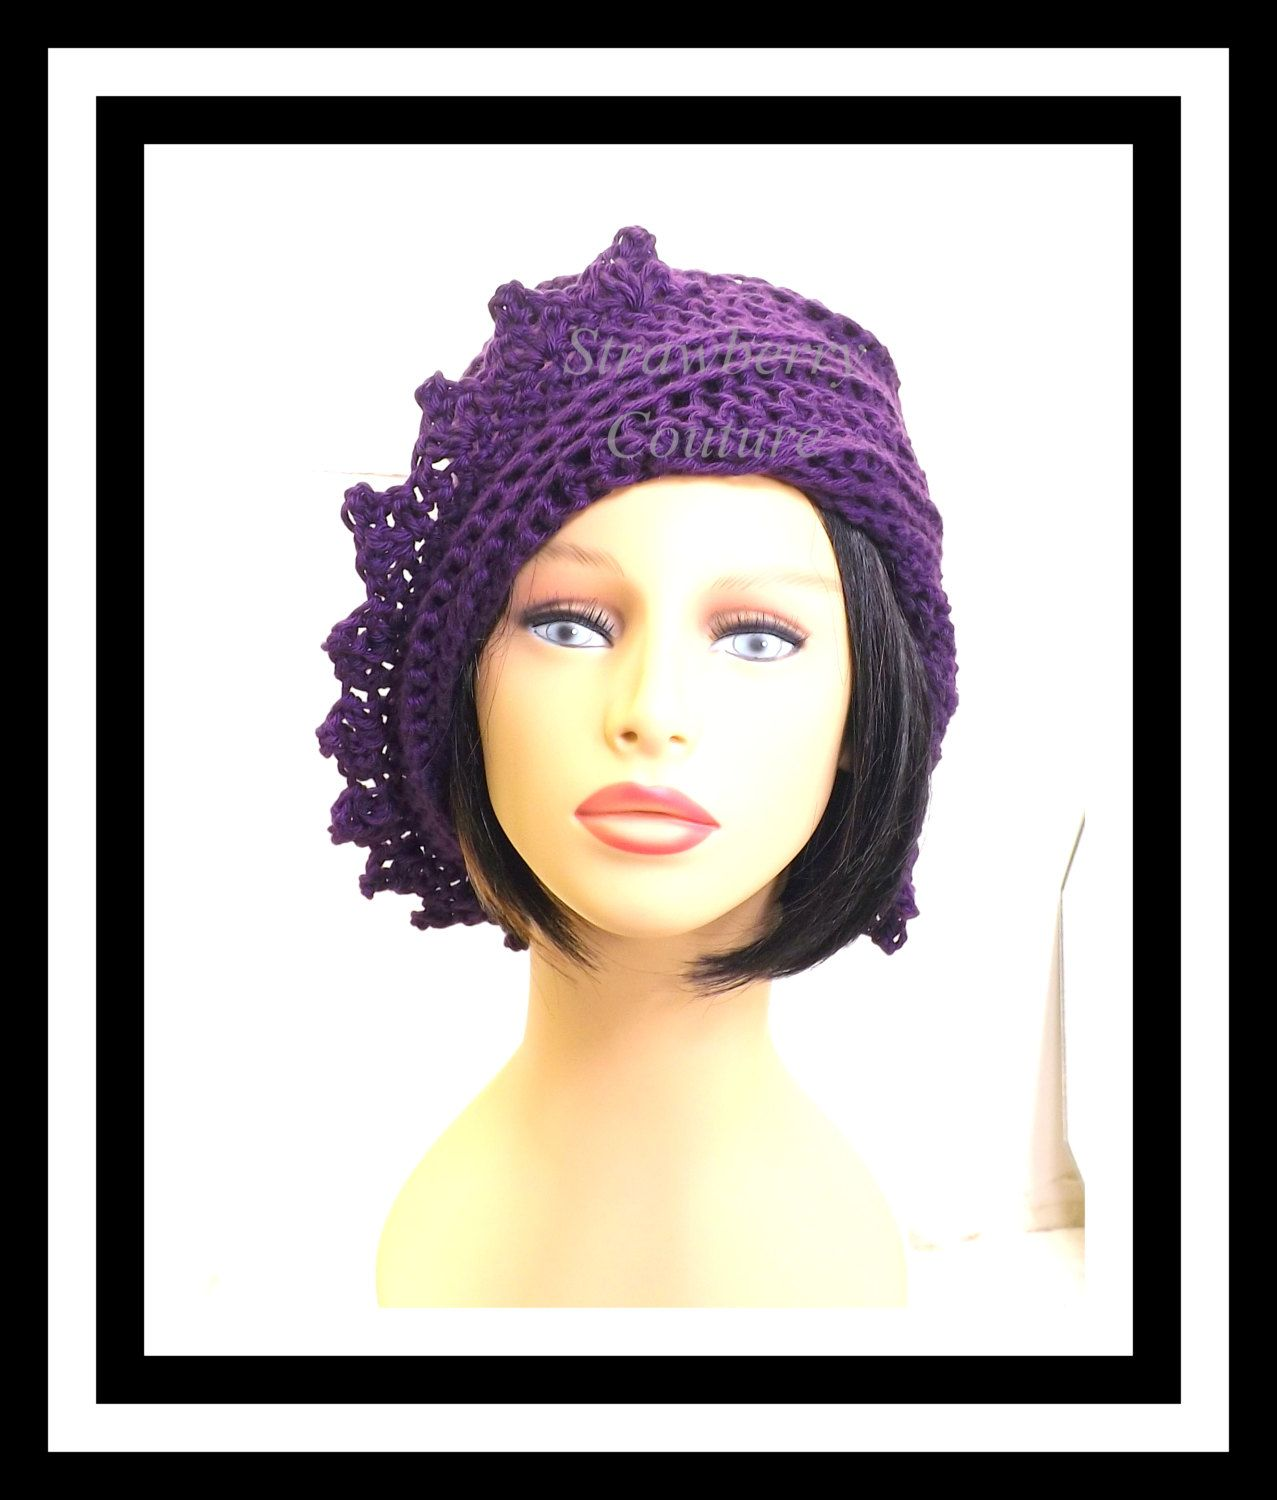 e5ca5564be0 Purple Crochet Hat Womens Hat Summer Hat for Women Crochet Beanie Hat  Purple Hat Cotton Hat LAUREN 40.00 USD by  strawberrycouture on  Etsy -  MUST SEE!